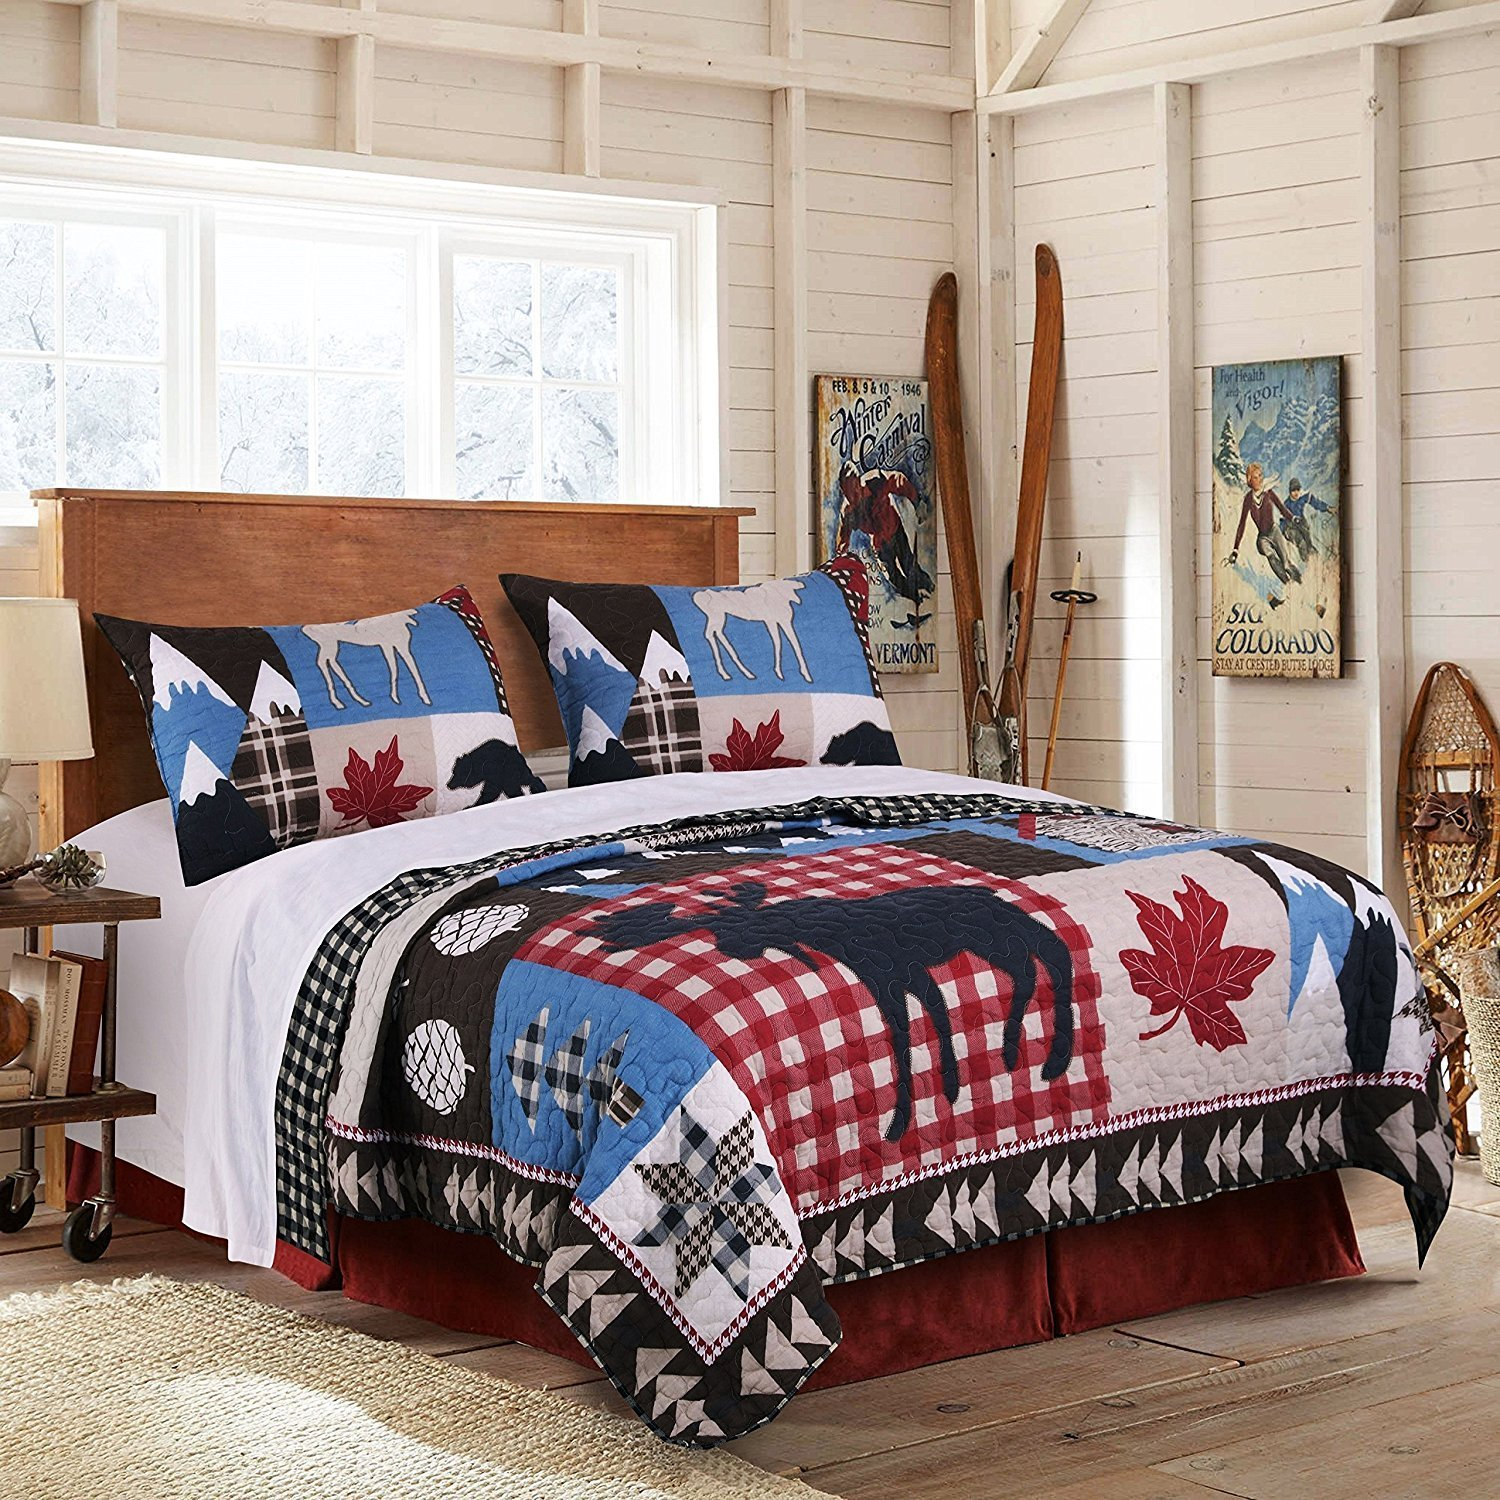 3pc Blue White Red Black Hunting Themed Quilt Full Queen Set, Wilderness Wild, Black Bear Bedding Moose Plaid Log Cabin Pattern Lodge Leaf Mountains Snow Capped, Microfiber Polyester